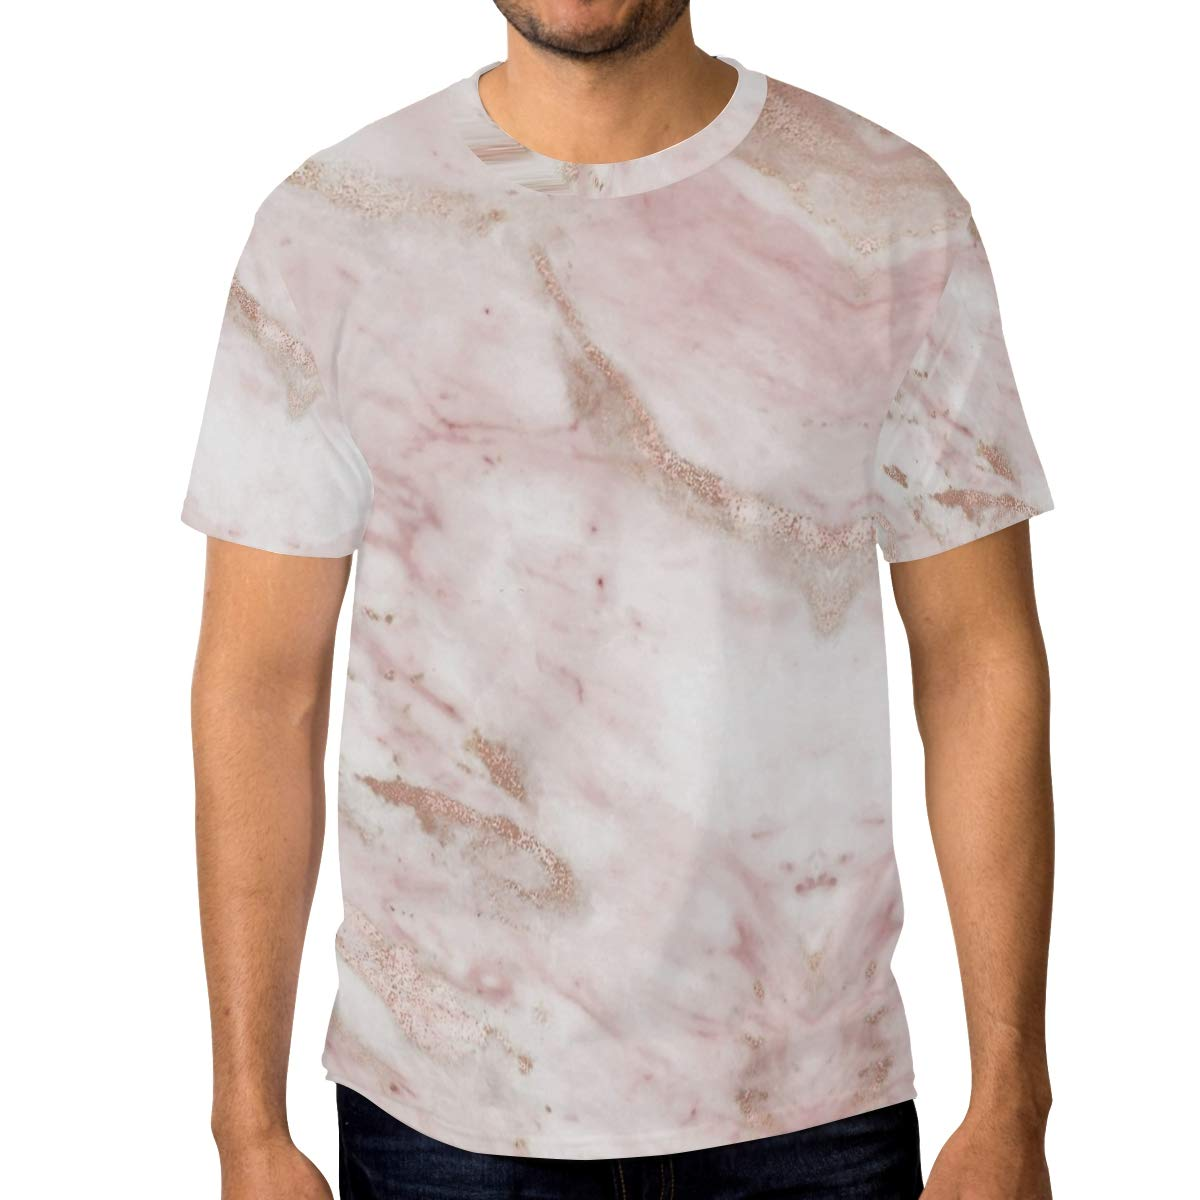 Horatiood Huberyyd Pink Marble Rose Gold Mens T Shirts Graphic Funny Body Print Short T-Shirt Unisex Pullover Blouse